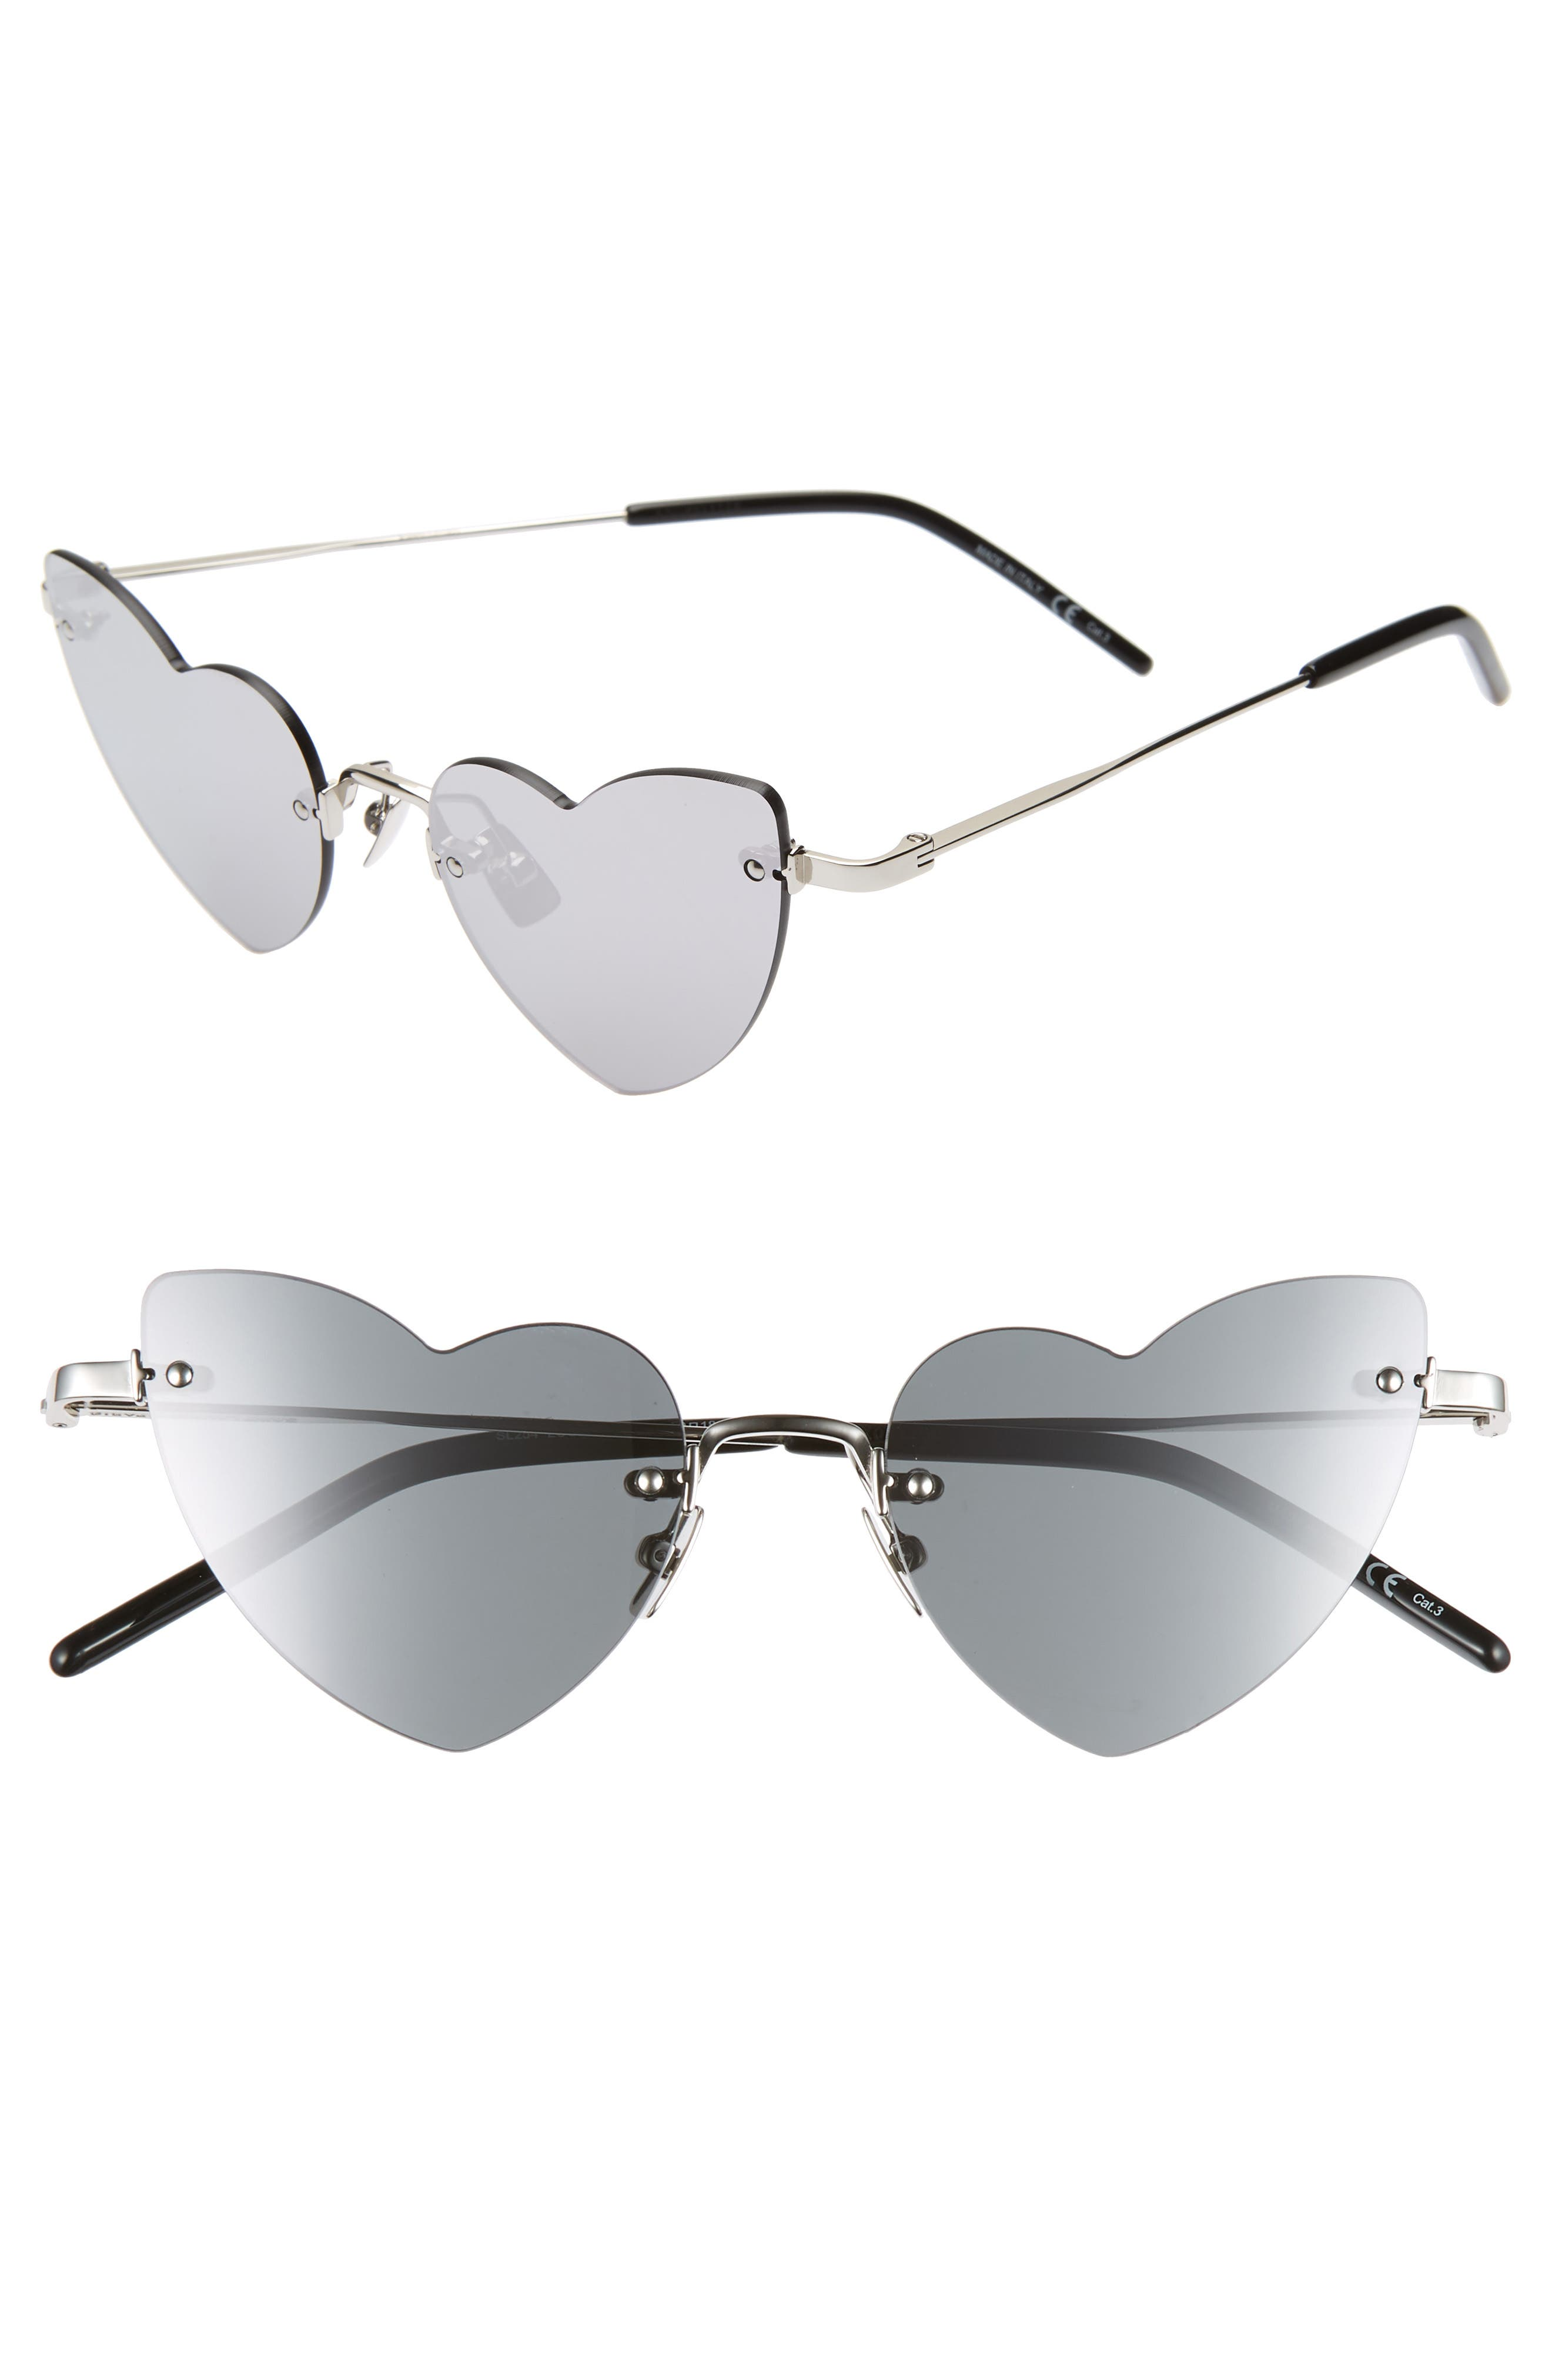 Saint Laurent 50Mm Rimless Heart Shaped Sunglasses - Silver/ Silver